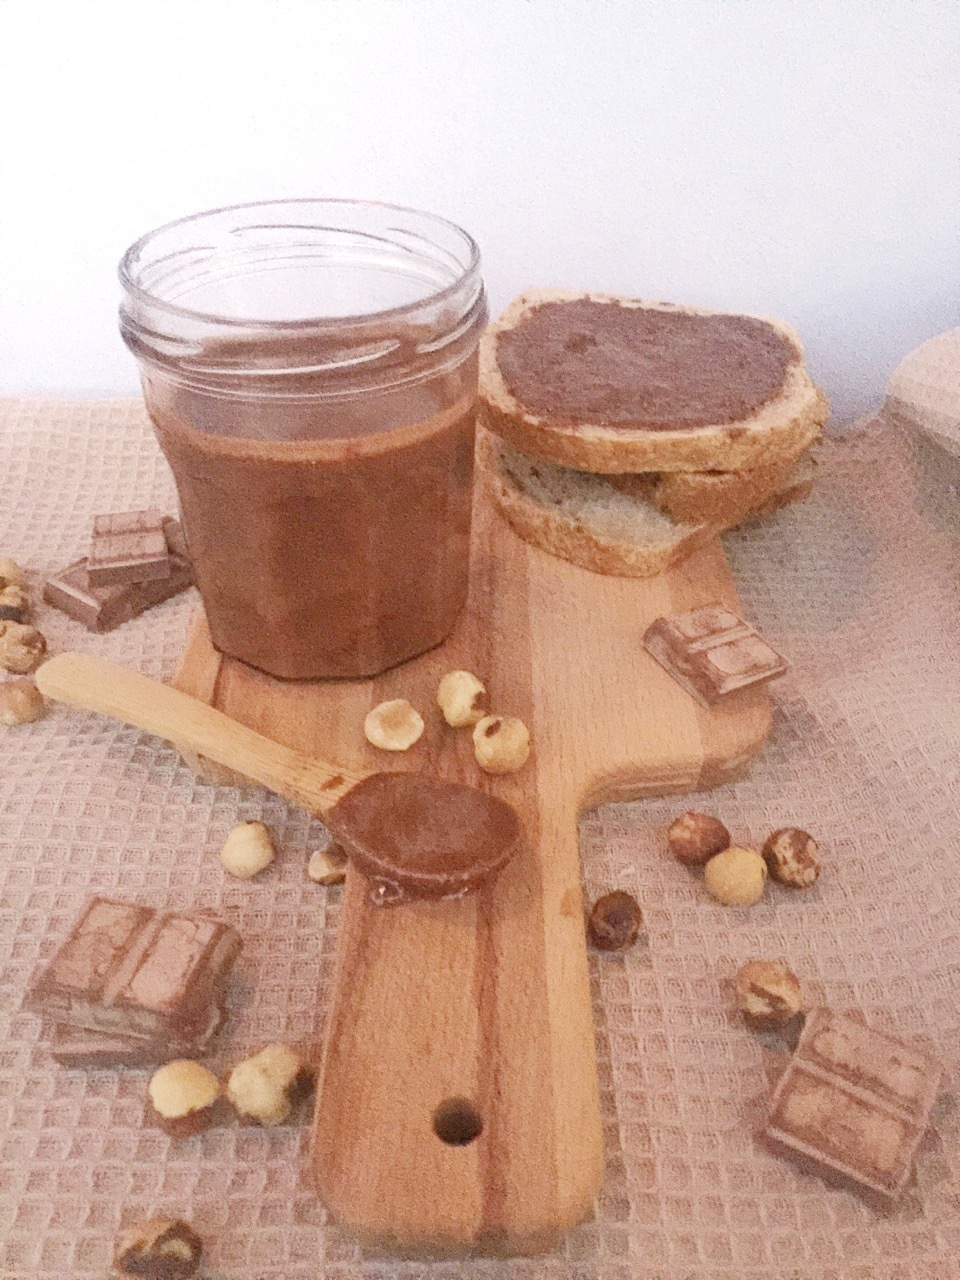 Crema di nocciole: 5 ingredienti in 5 minuti